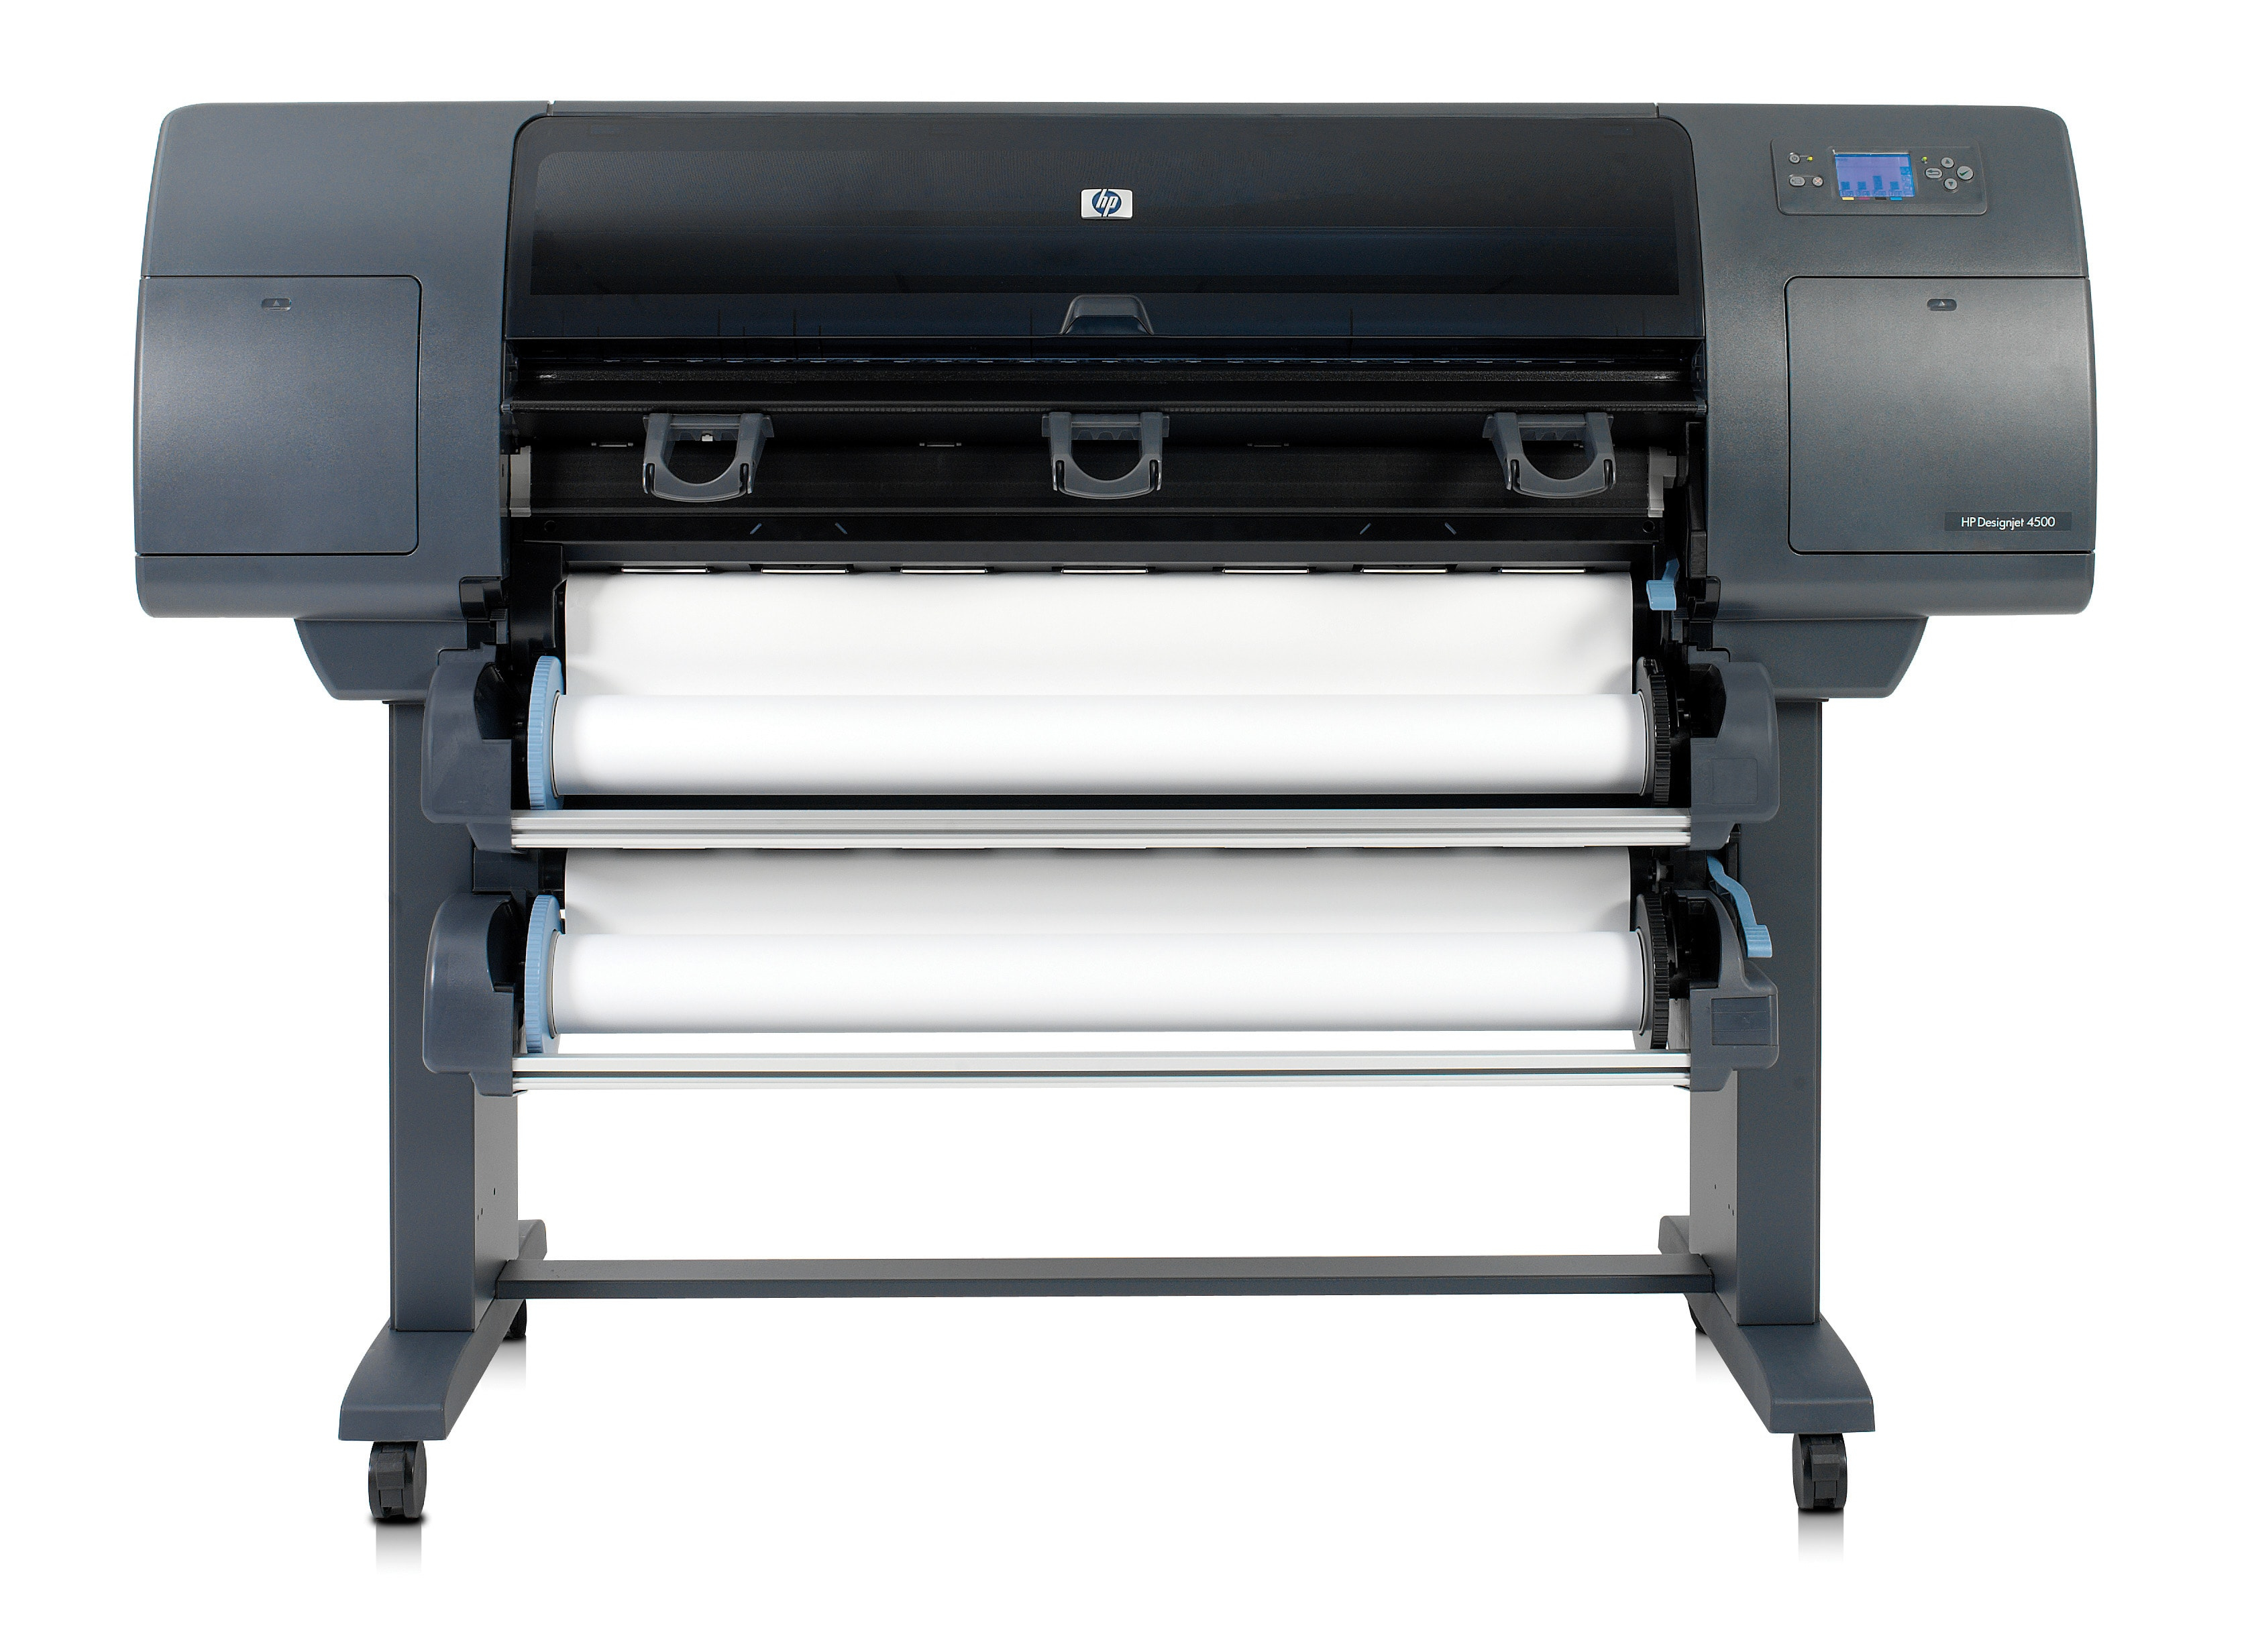 HP Designjet 4500PS Wide Format Printer Q1272A - Refurbished